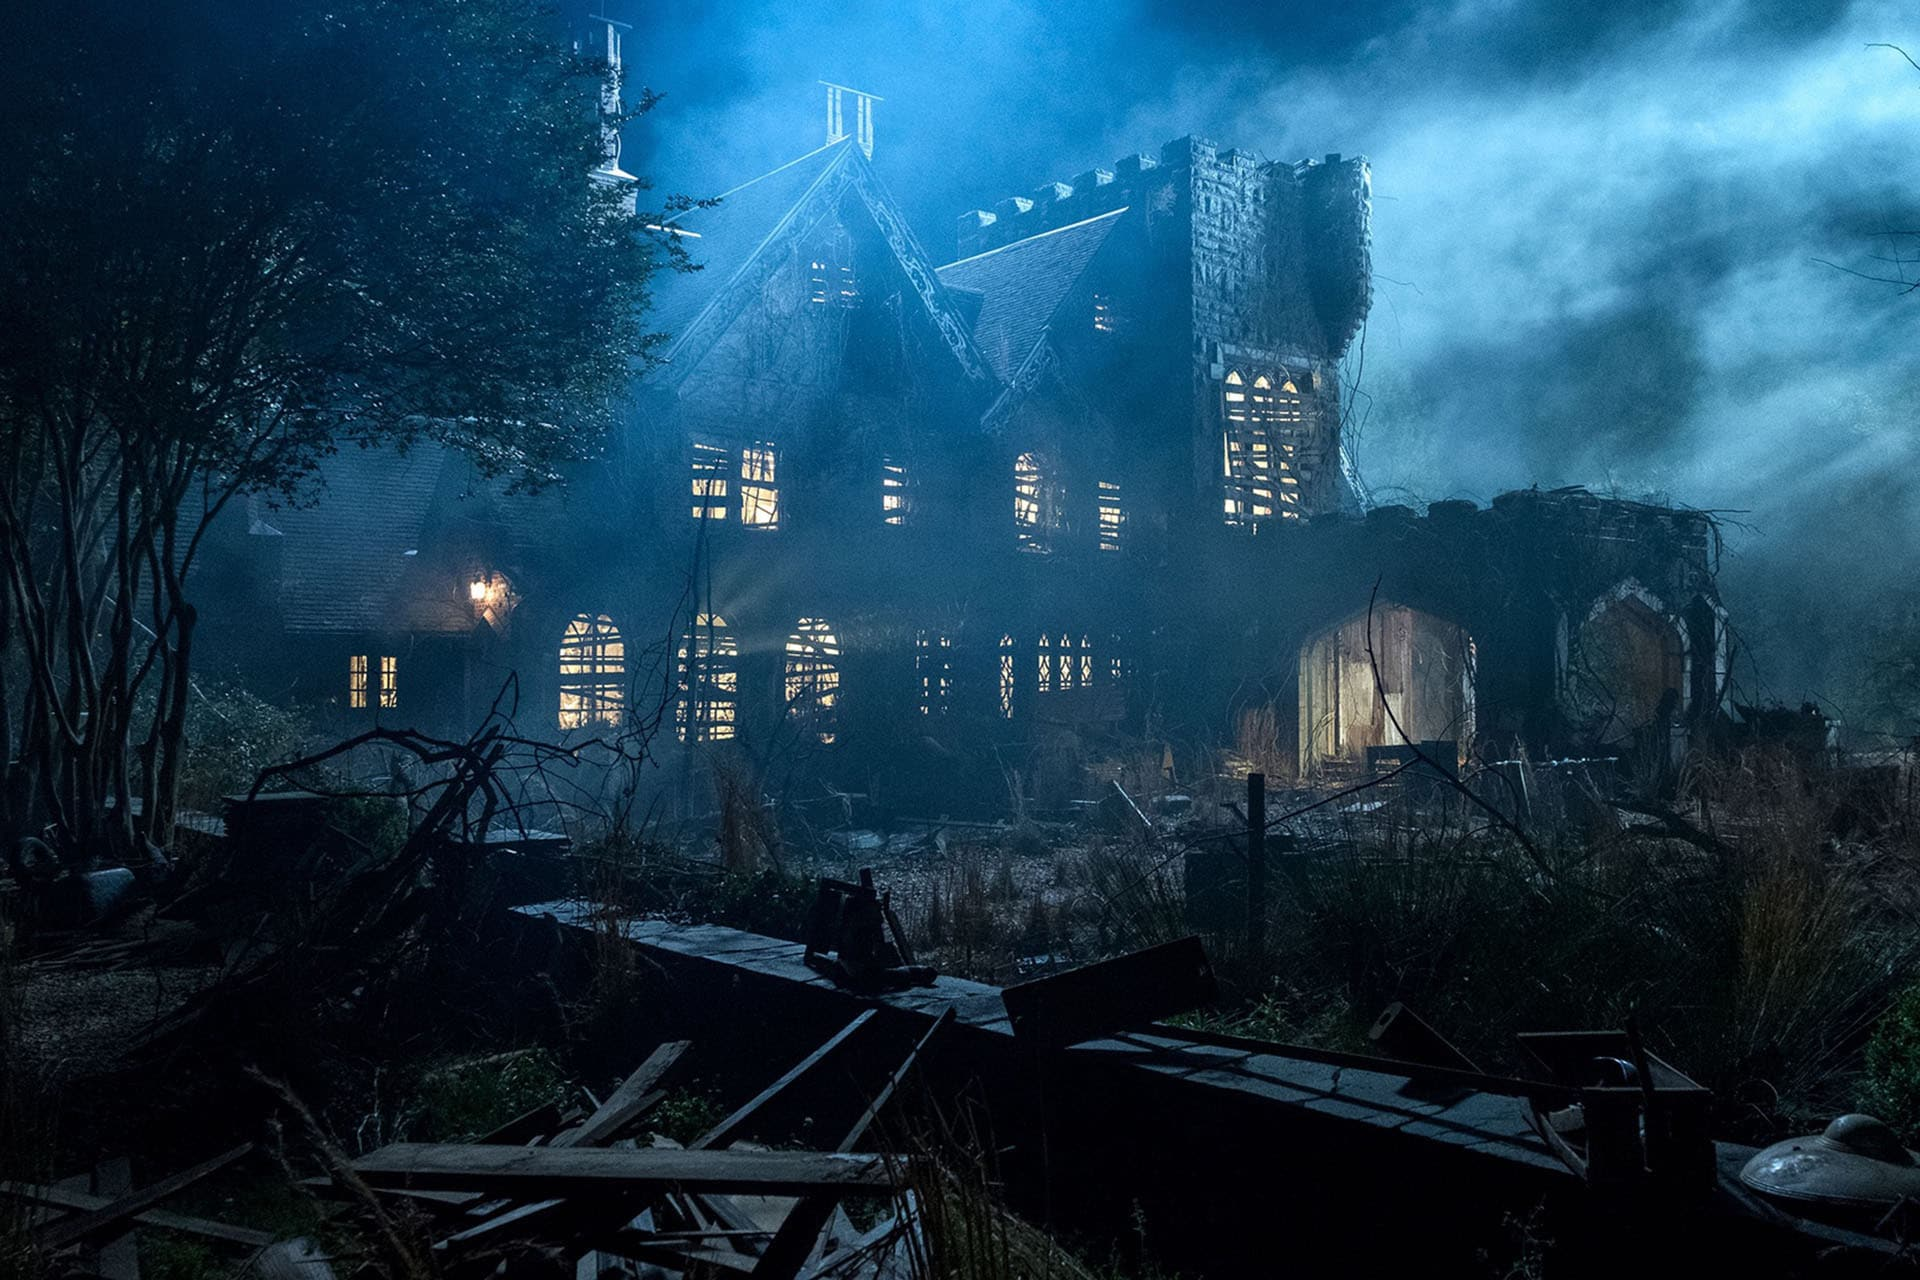 The Haunting Of Hill House Trailer Is Here To Give You Nightmares Gq